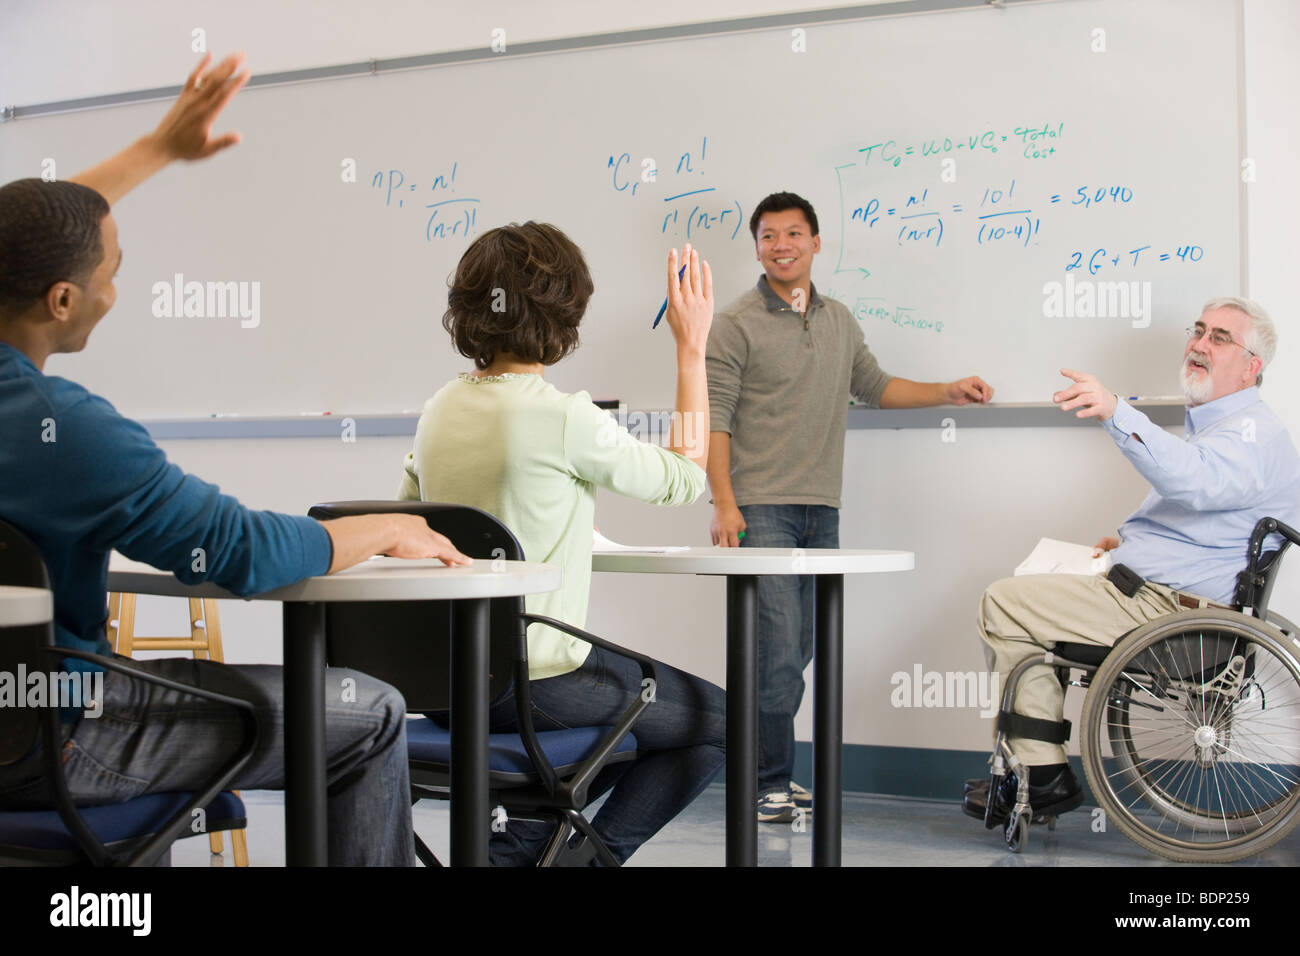 University professor asking to his students in a classroom - Stock Image